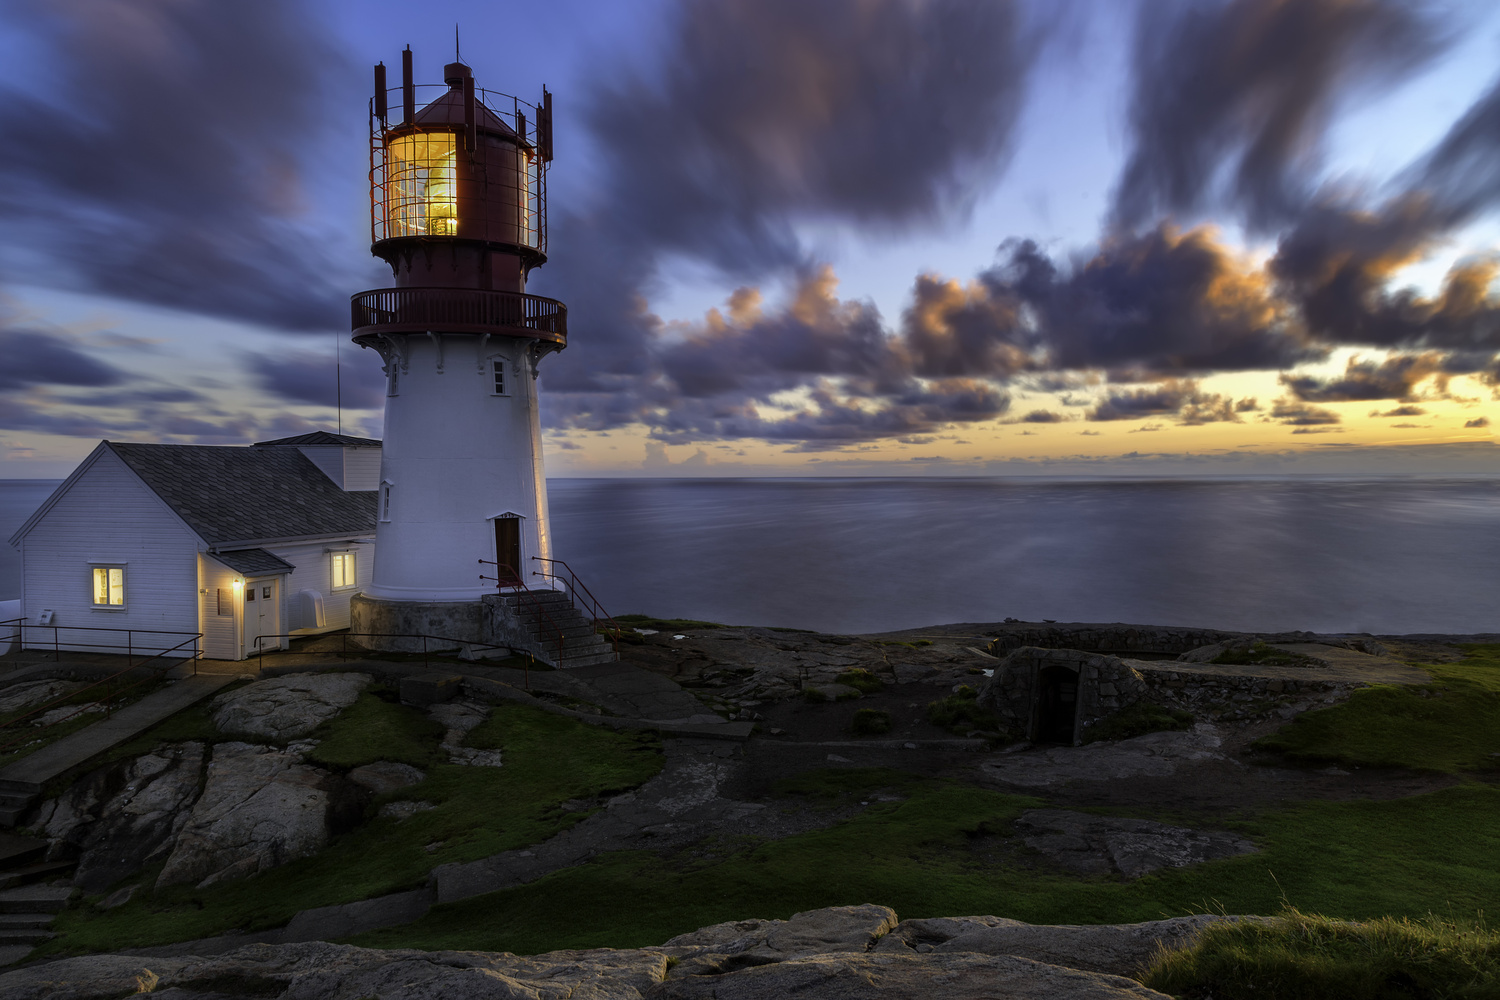 Lindesnes Lighthouse, Norway by Annelin Hoff